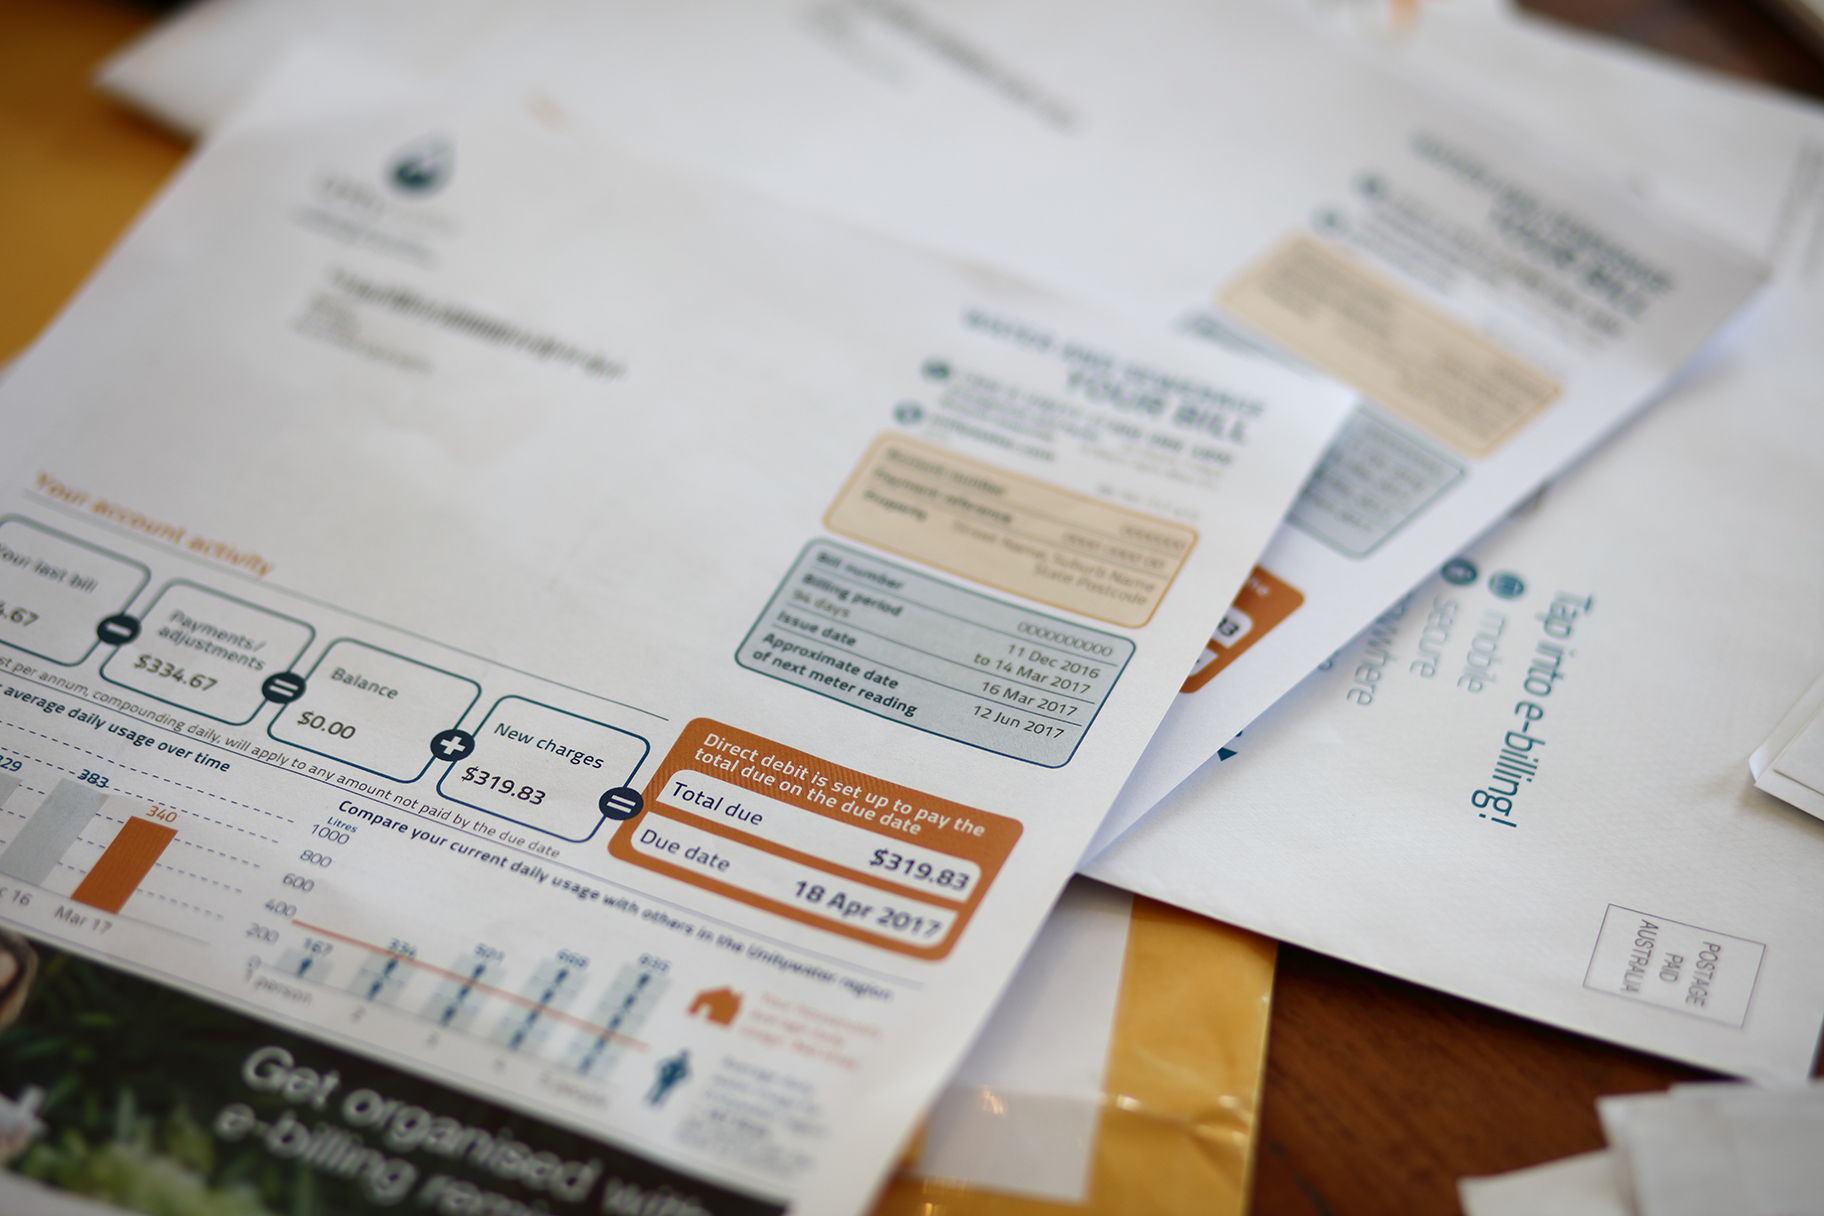 Unitywater bills lying on desk in pile of papers